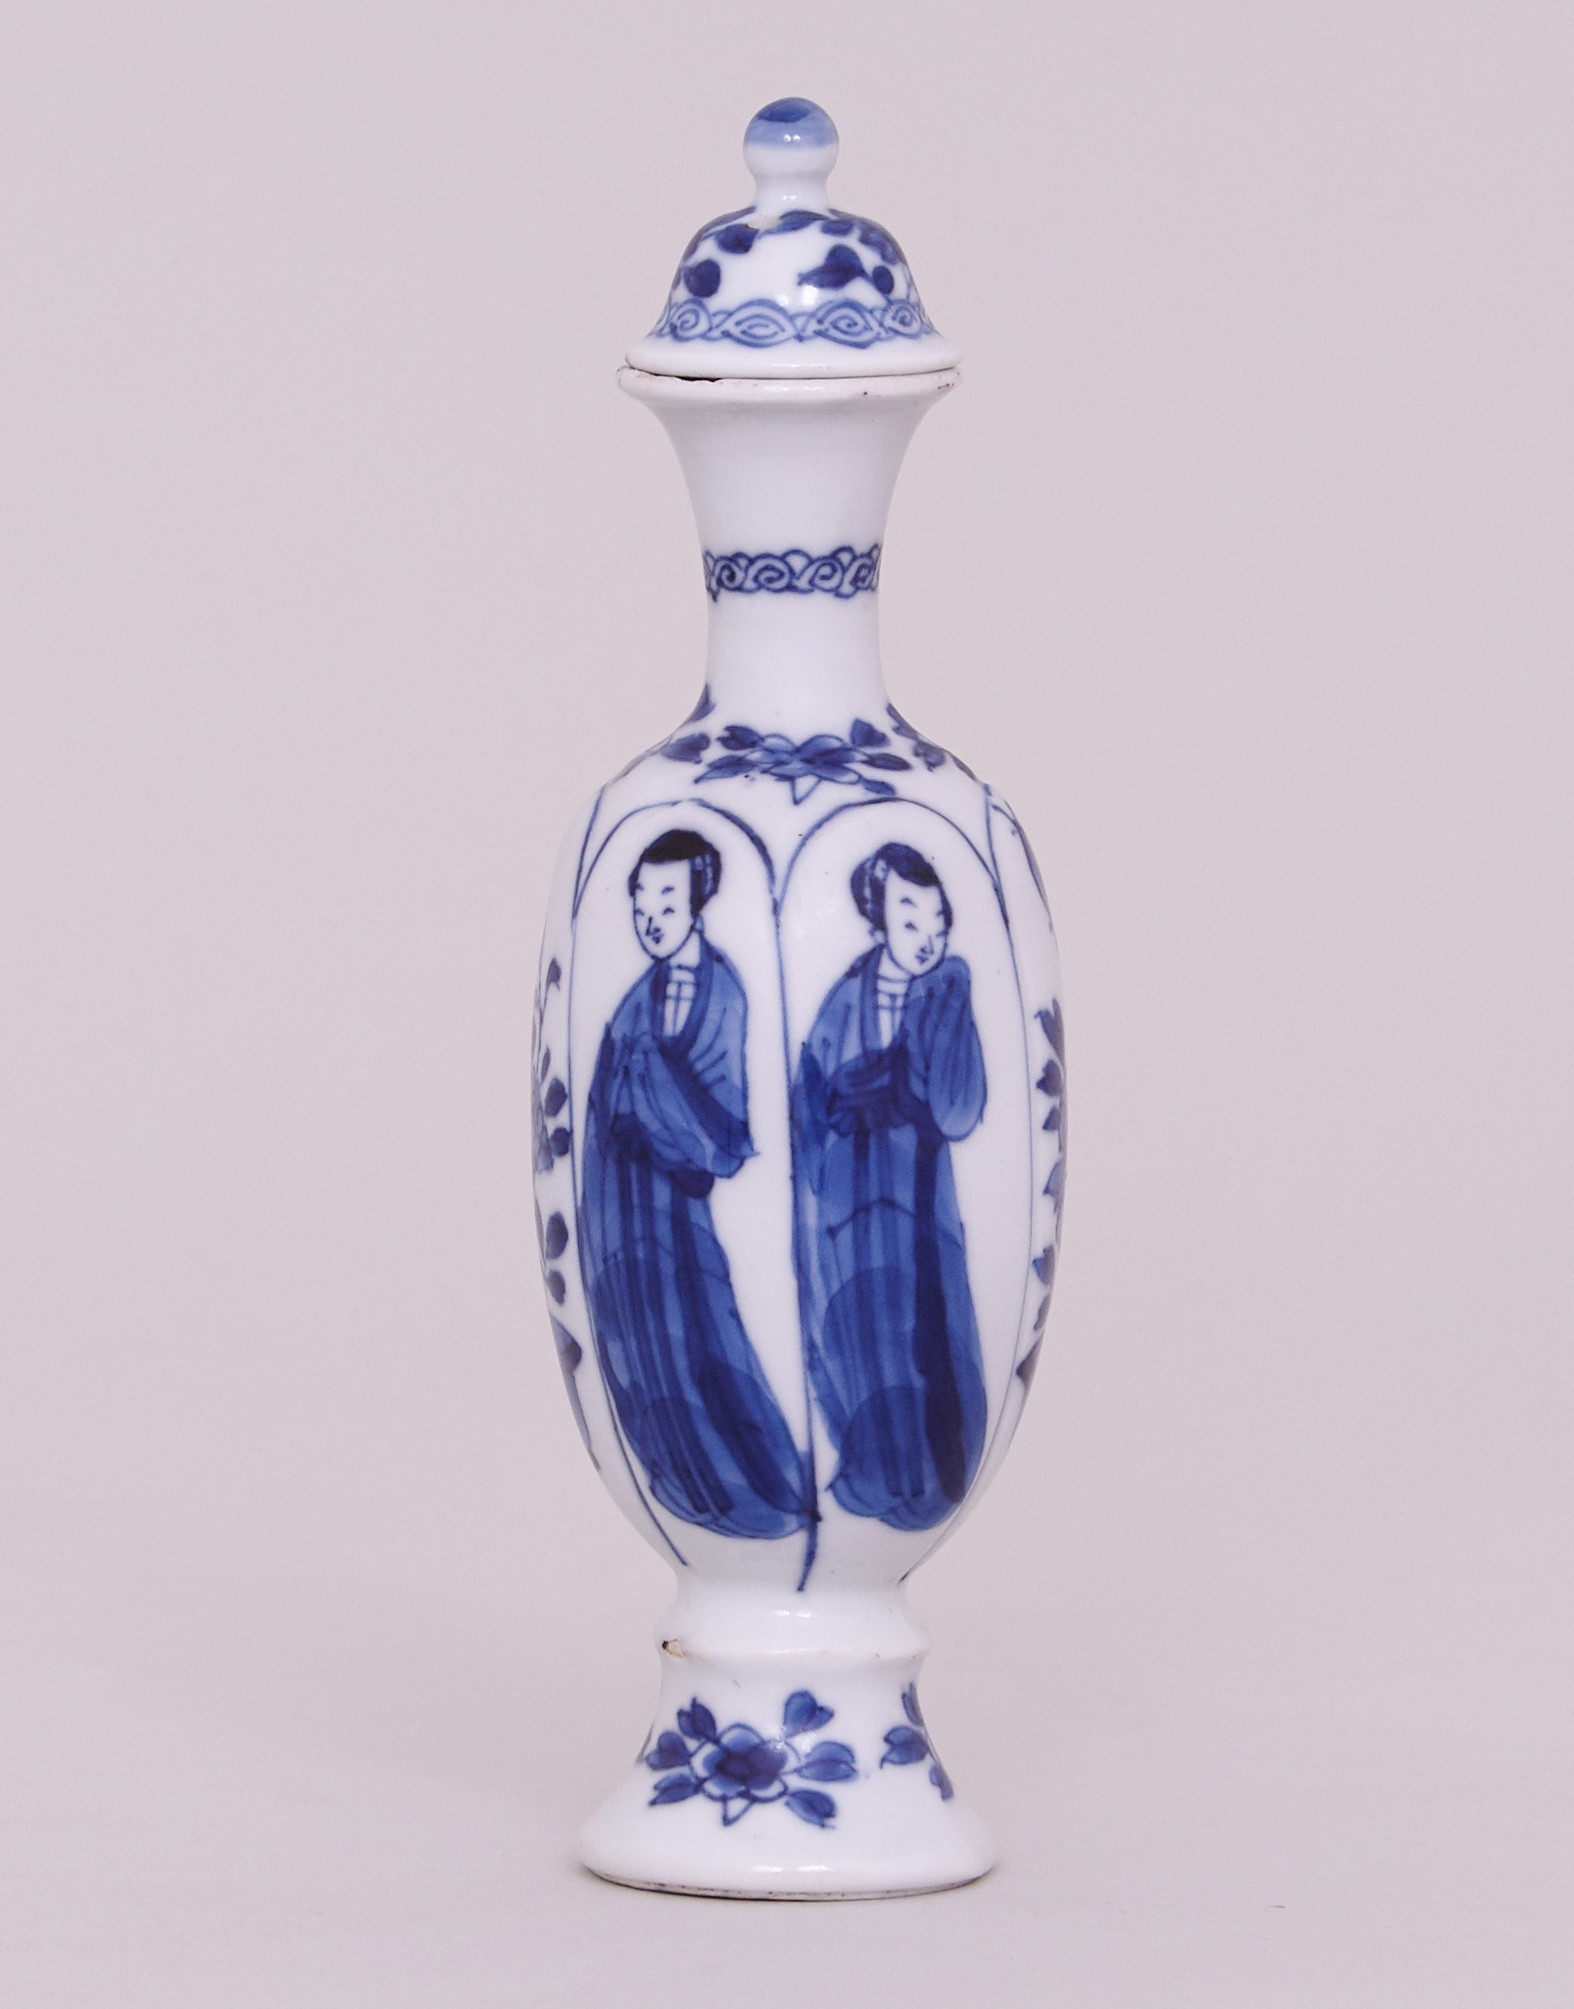 cobalt blue glass flower vases of a chinese kangxi blue and white miniature vase and cover kangxi within a chinese kangxi blue and white miniature vase and cover